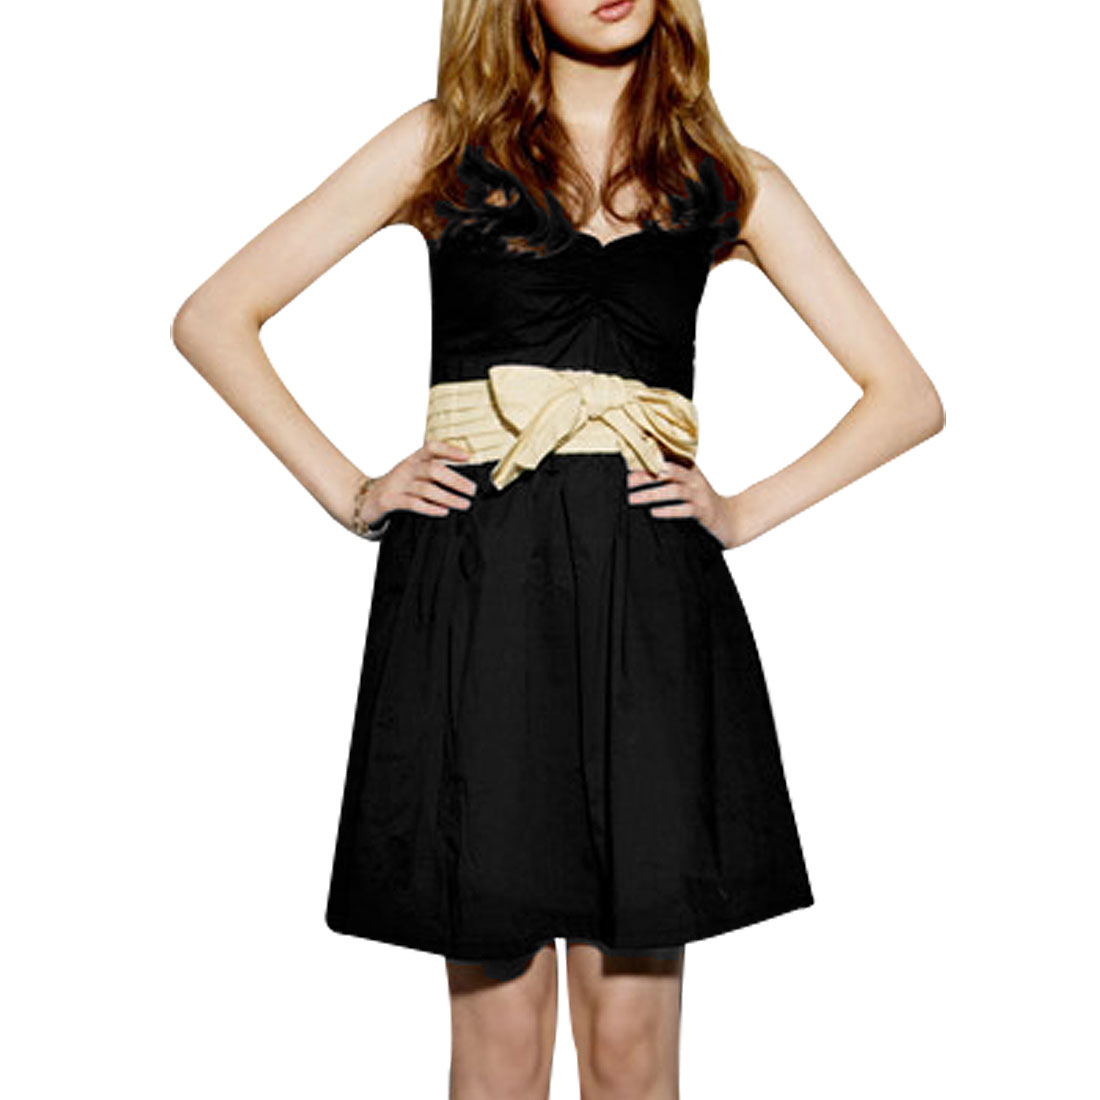 Lady Black Padded Bust Beige Self Tie Strap Mini Tube Dress XS